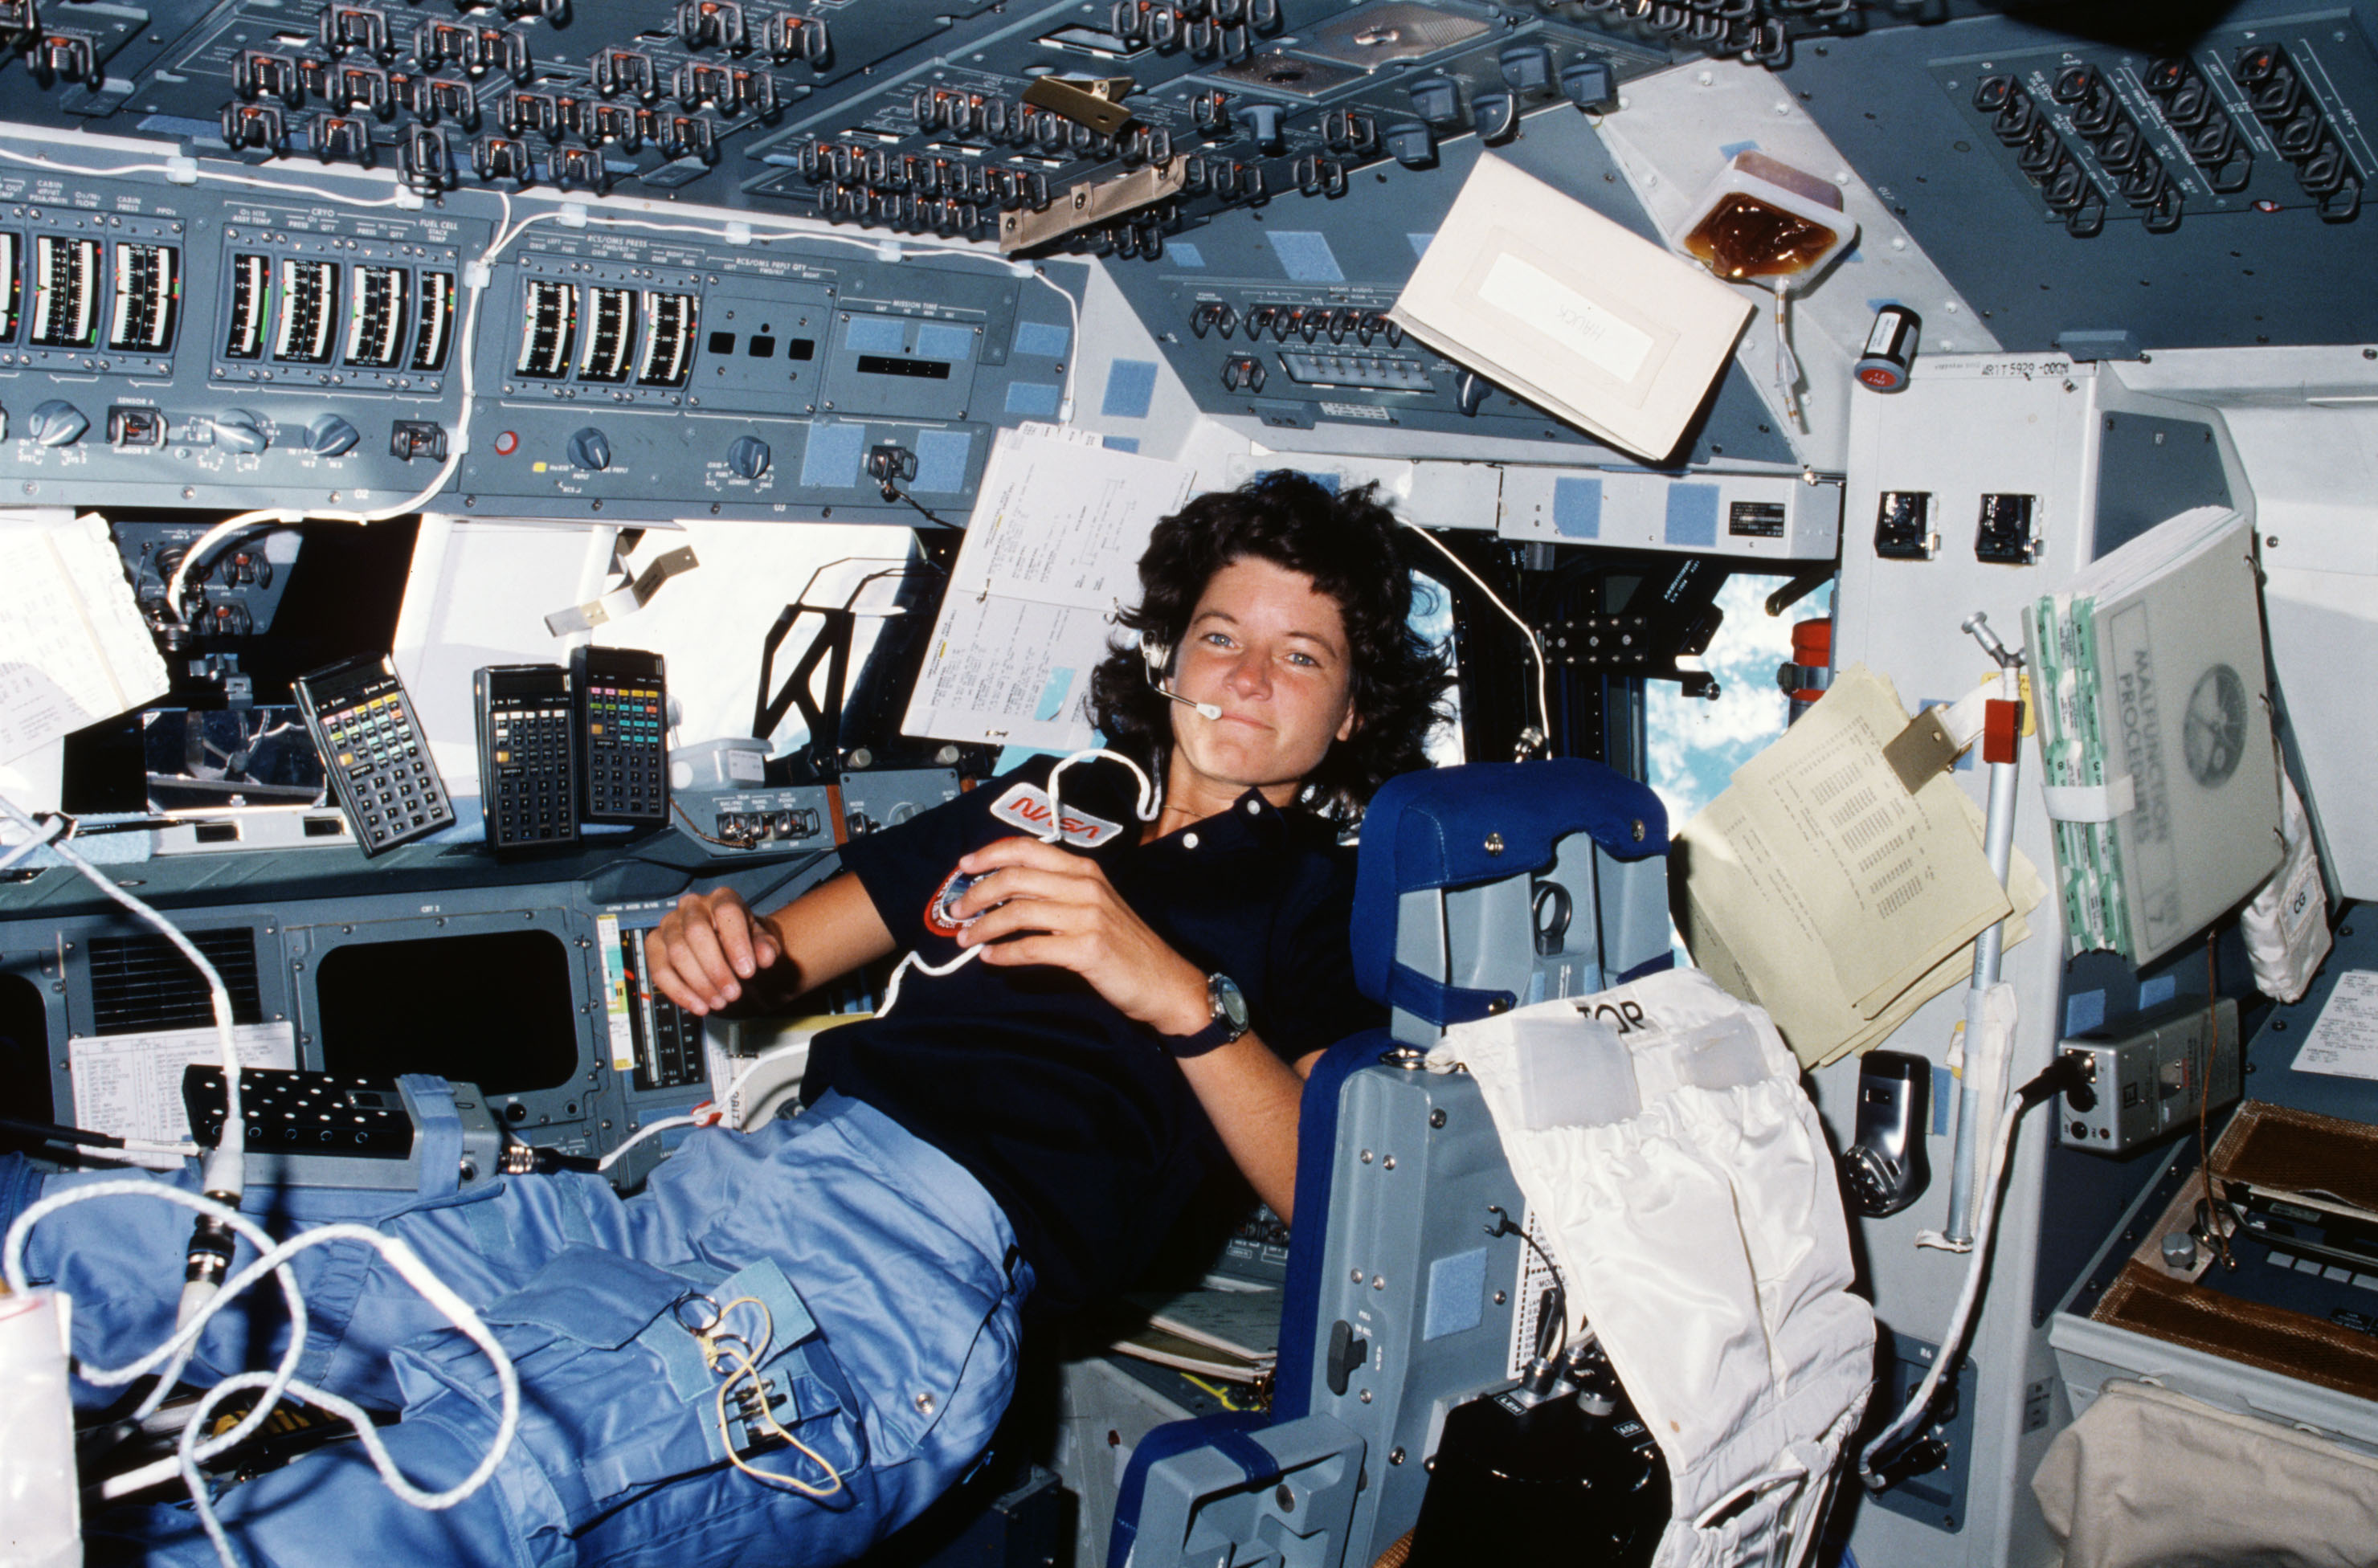 STS-7 Shuttle Mission Imagery